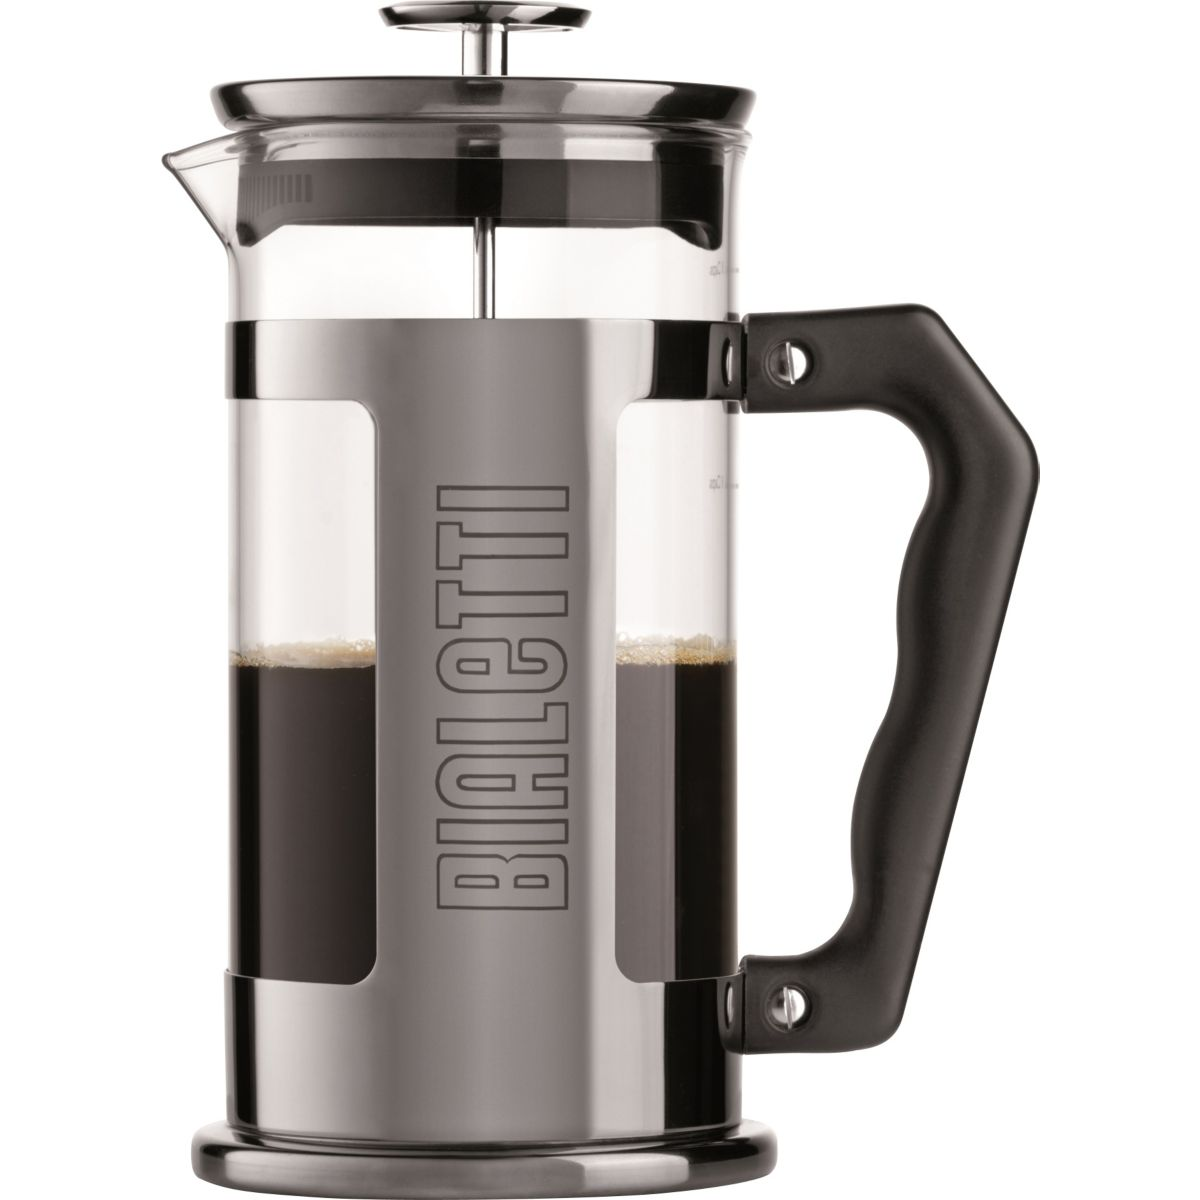 Cafetière bialetti french press bialetti - livraison offerte : code liv (photo)